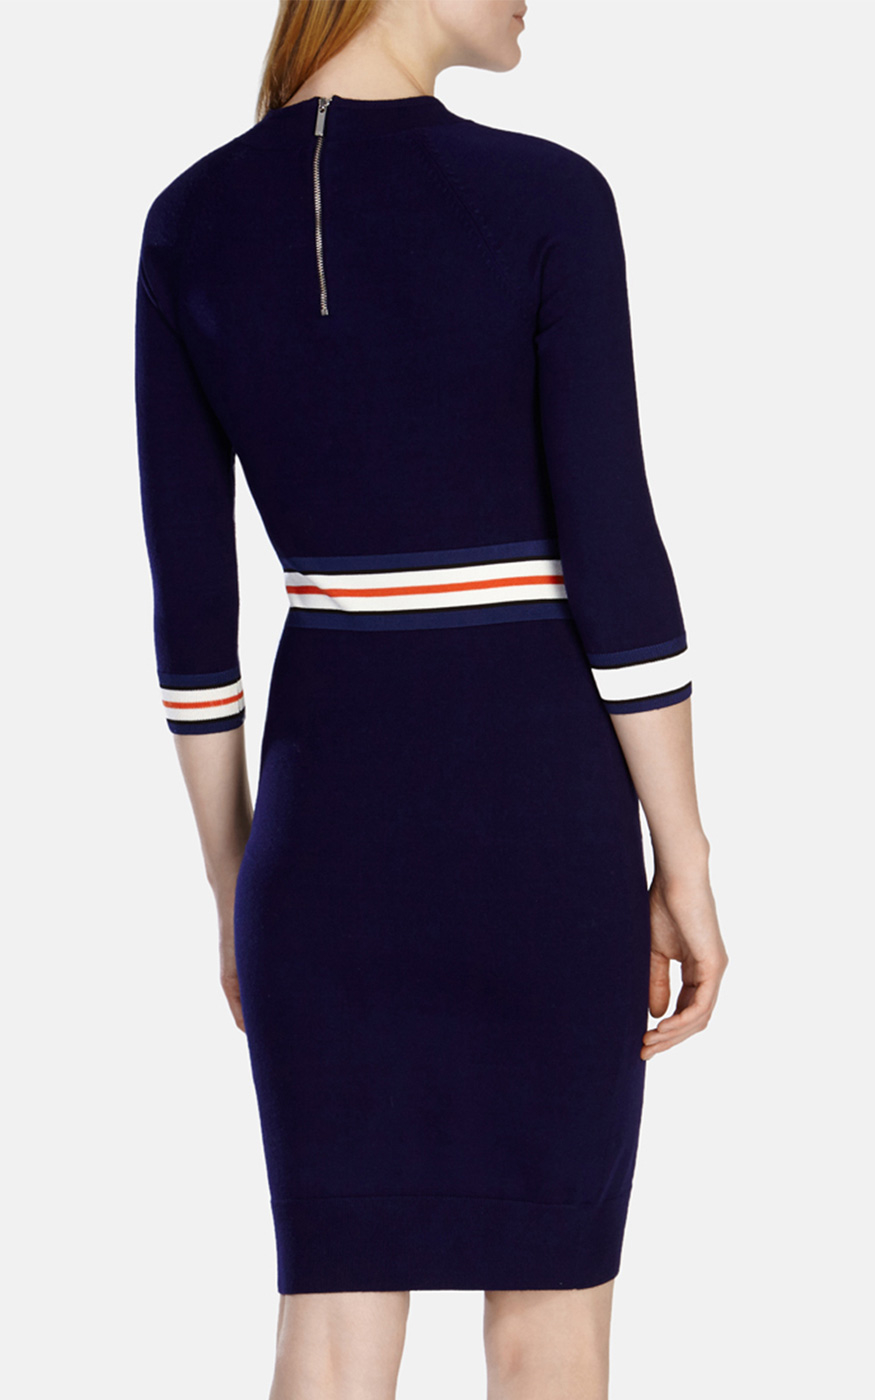 Whether you are looking for the best blue knit dress or top-of-the-line blue knit dress at affordable prices, you'll find a variety of blue knit dress that fits your needs and budget. And don't forget, your blue knit dress order may qualify for FlexPay, allowing you to buy now and pay later.